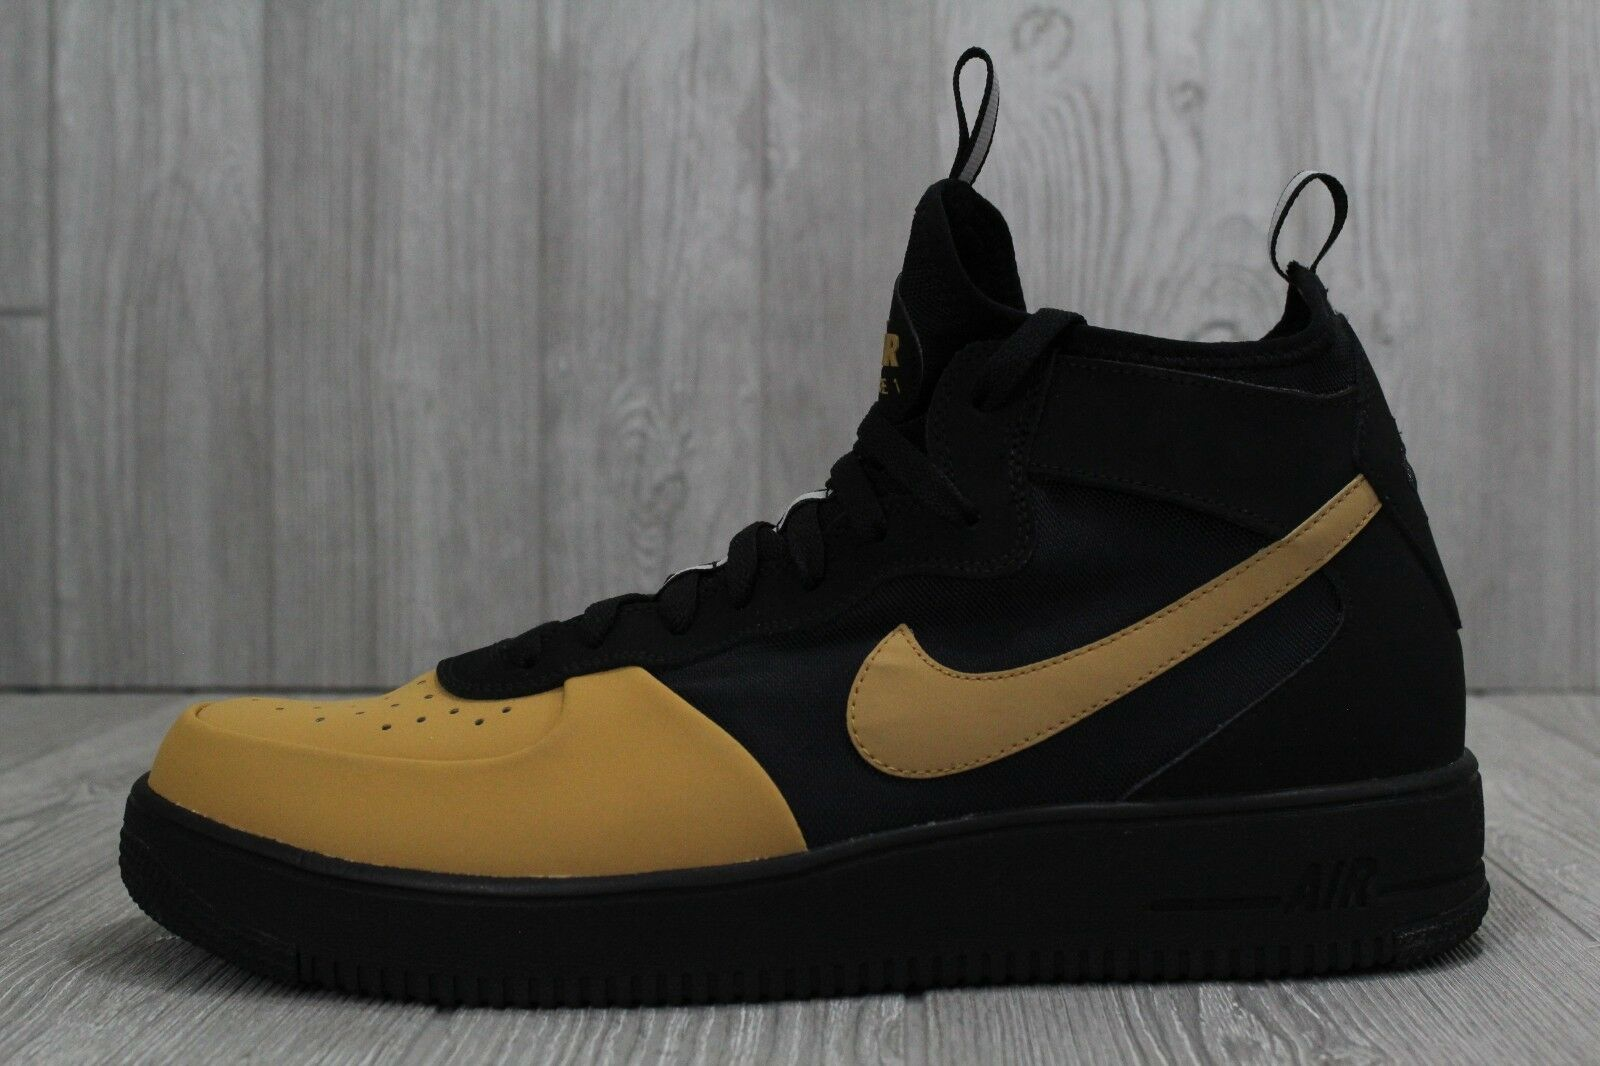 30 New Nike MEN'S AF1 Ultraforce Mid Tech Black/Gold AH6746 002 Shoes 12 13 14 The latest discount shoes for men and women